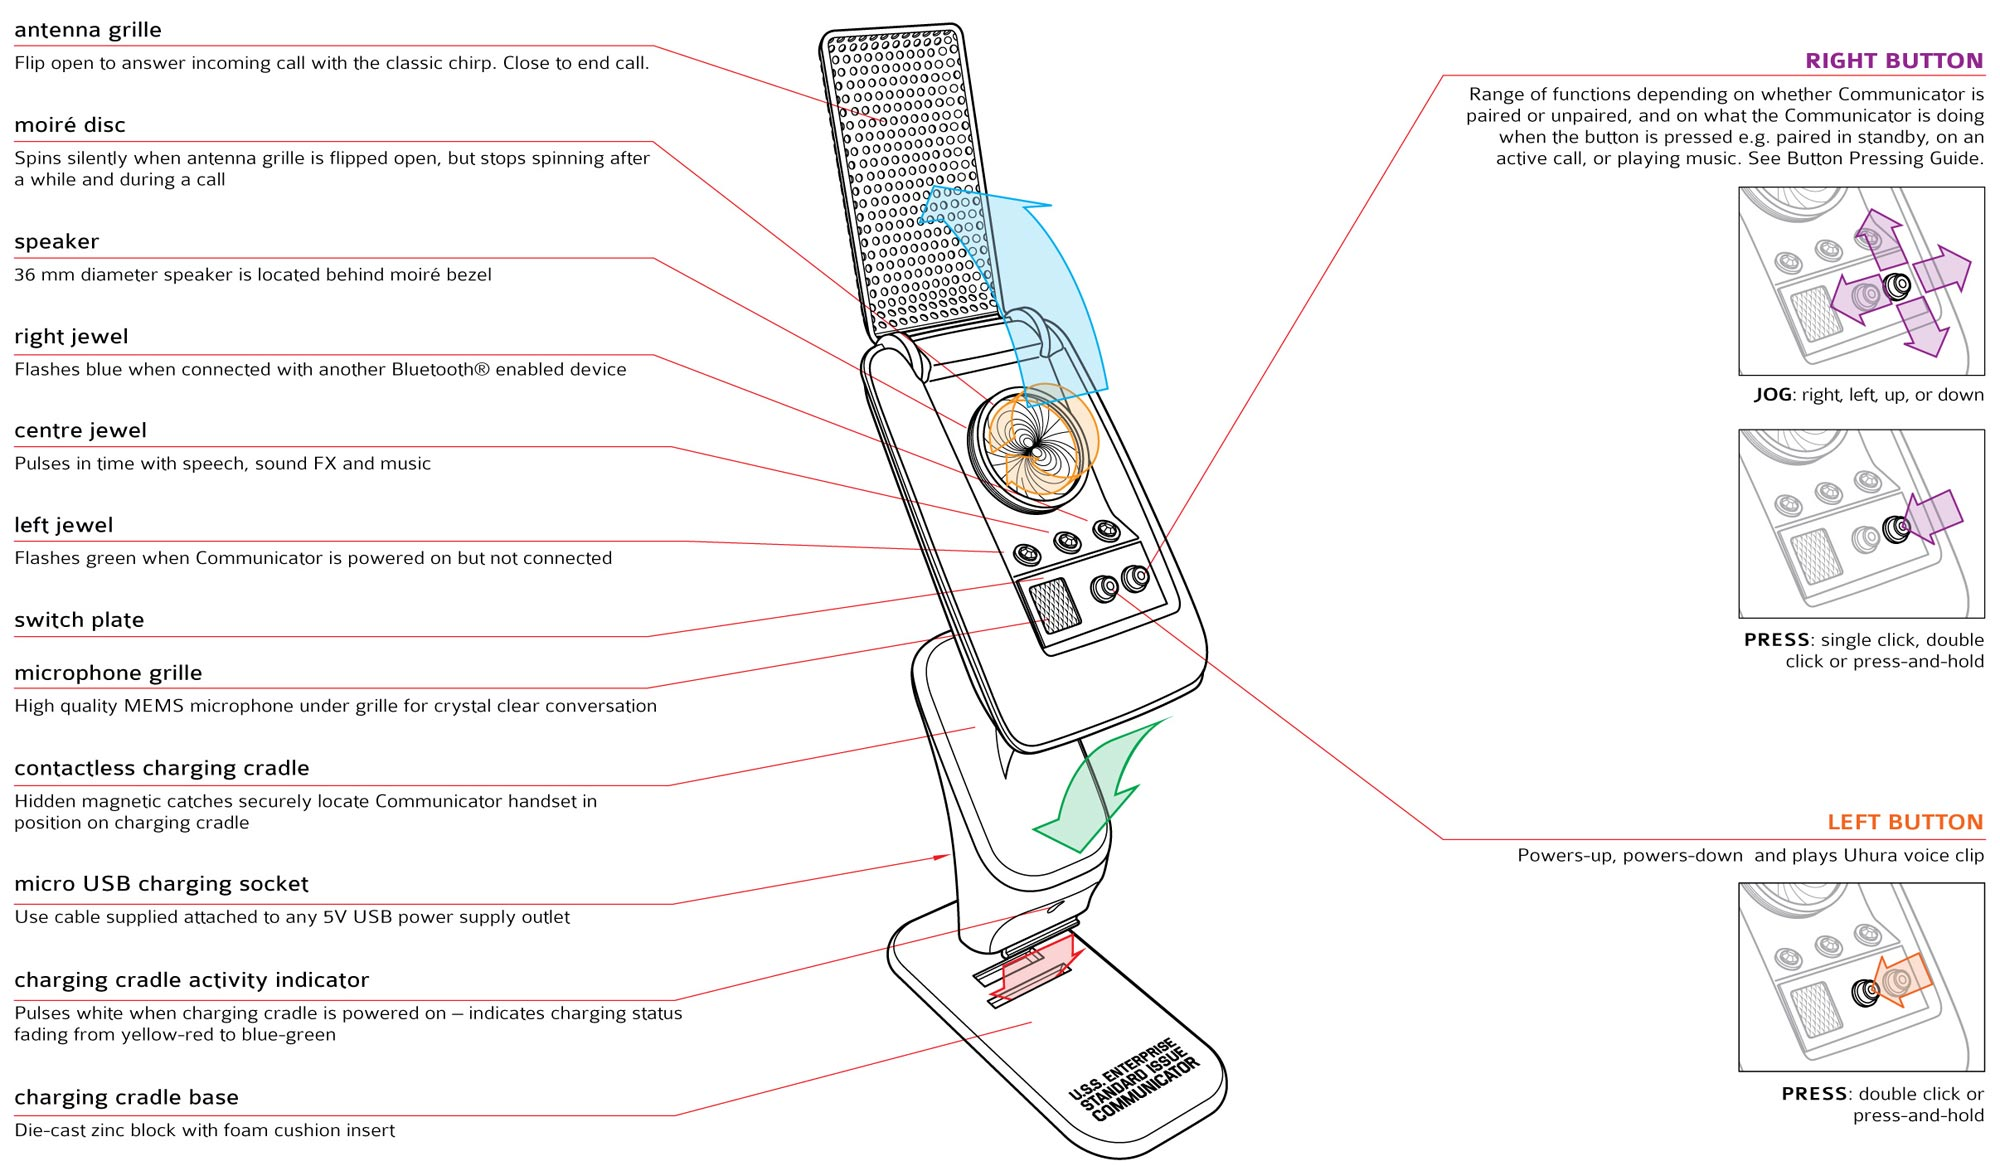 Star Trek Communicator User Manual